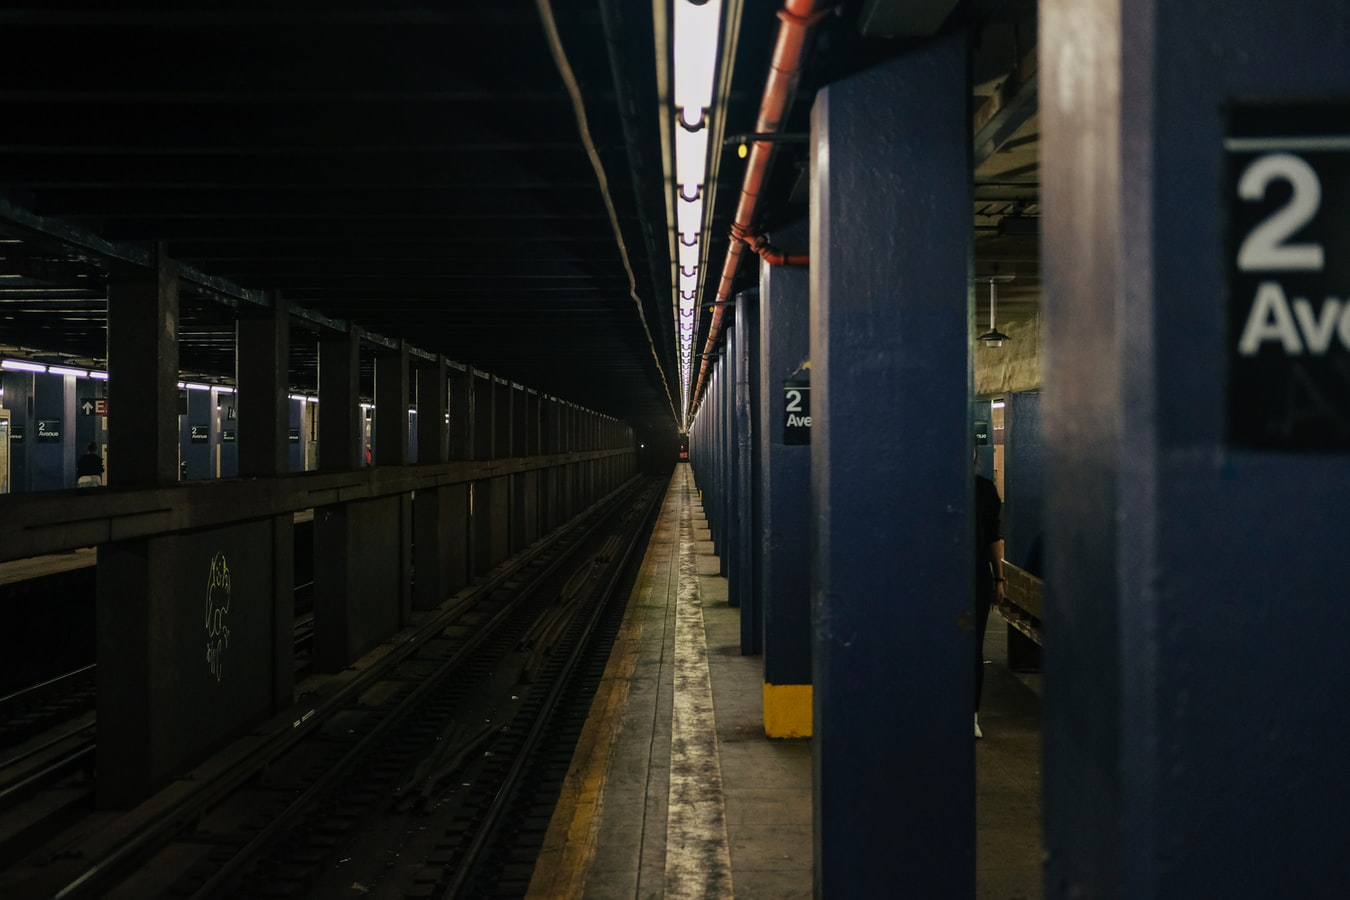 2nd Ave Station At the subway in manhattan NYC